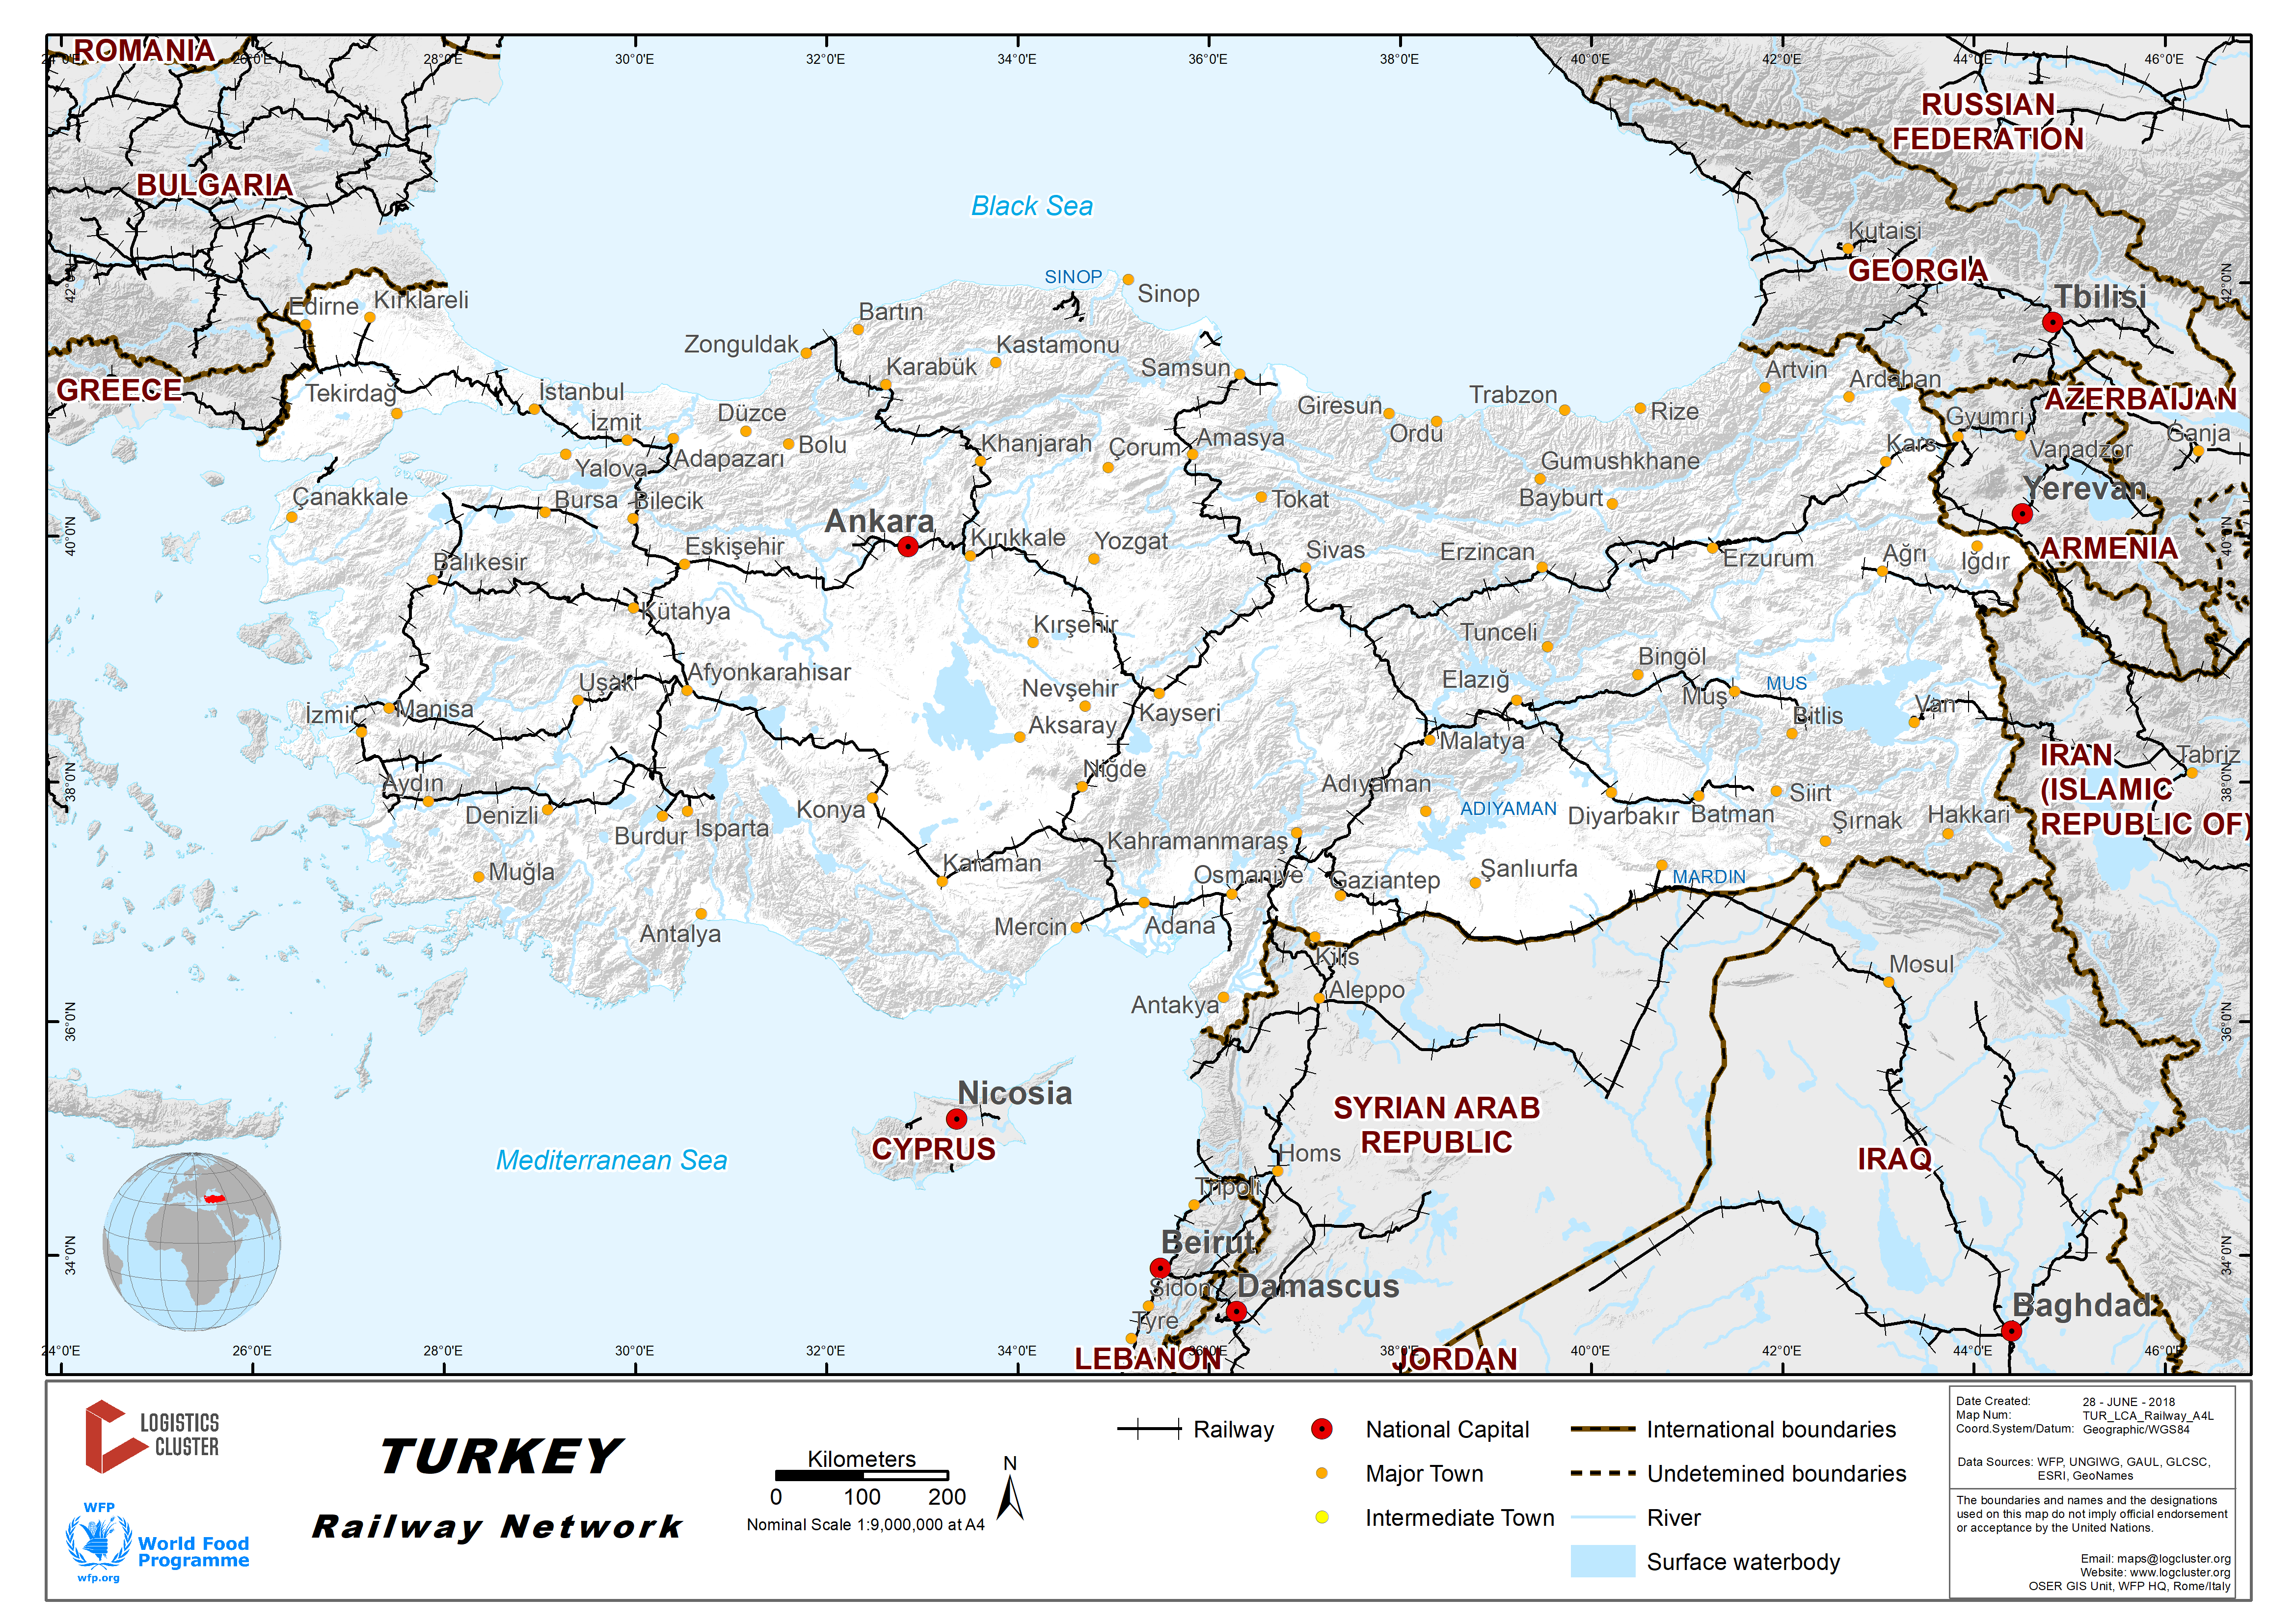 Turkey Map   TravelQuaz   ® further View Source moreover Turkey to launch Istanbul – Edirne high sd rail tender in 2018 together with BBC NEWS   South Asia   stan Turkey rail trial starts besides Turkey to re launch tender for 8 new metro lines besides  besides London to Istanbul by Rail in Romania  Europe   G Adventures further 2 4 Turkey Railway essment   Logistics Capacity essment together with File TURKISH HIGH SD RAIL  WORK     Wikipedia also Railway maps   Rail Turkey Travel likewise BBC News   Iraq Turkey railway link re opens additionally 2 4 Turkey Railway essment   Logistics Capacity essment additionally Iran train ticket booking   Iran transport services likewise Istanbul Maps   Tour Maker Turkey in addition Trains of Turkey   History   ORC also Istanbul Rail Map   A Smart City Map  Even Offline. on turkey railway map